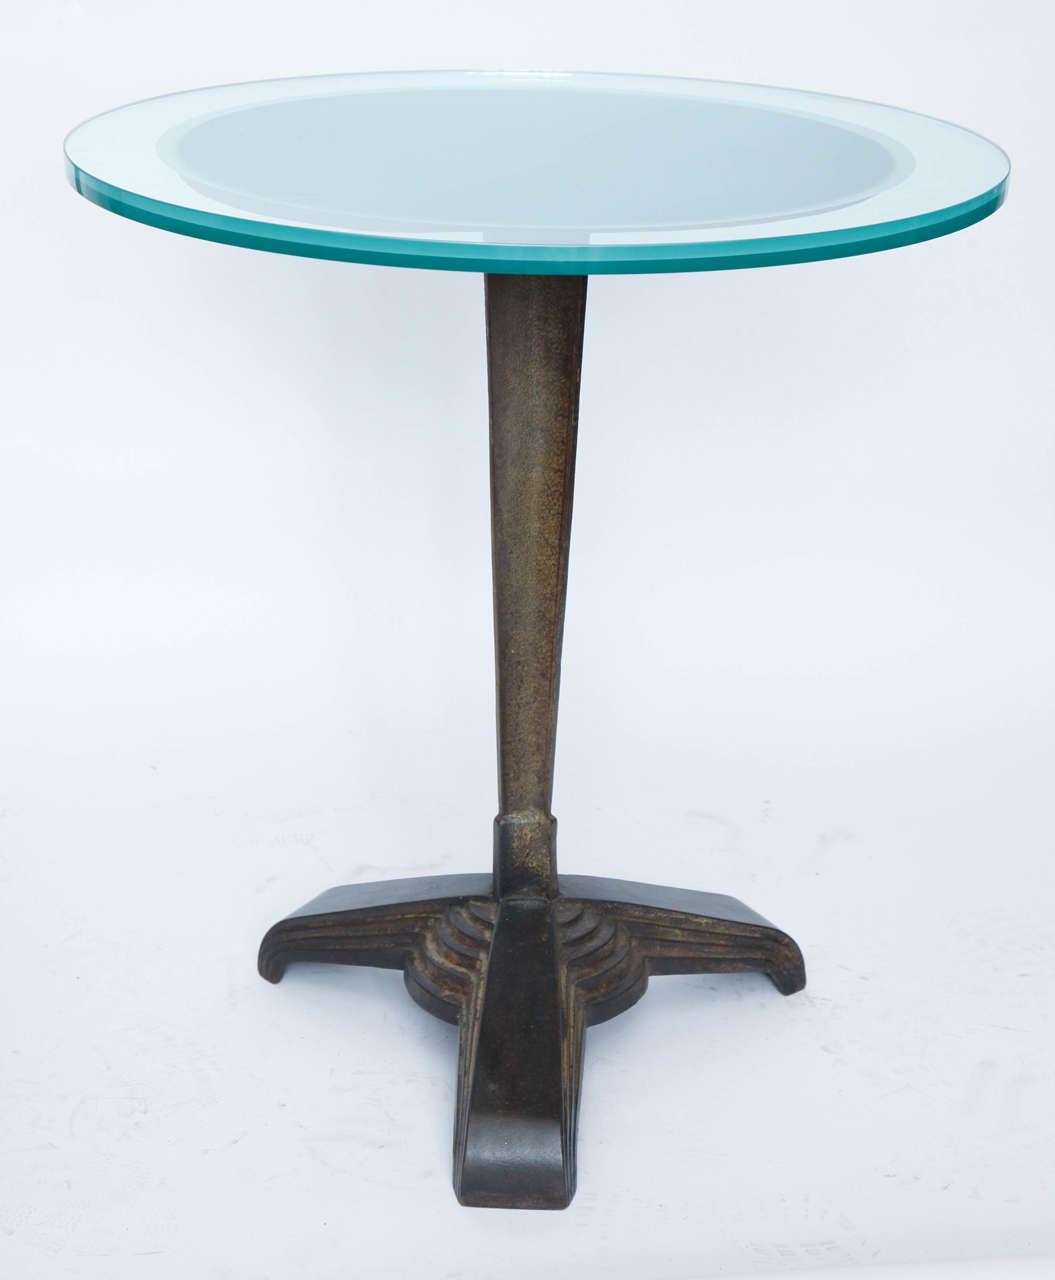 A 1920s American modernist Art Deco table.